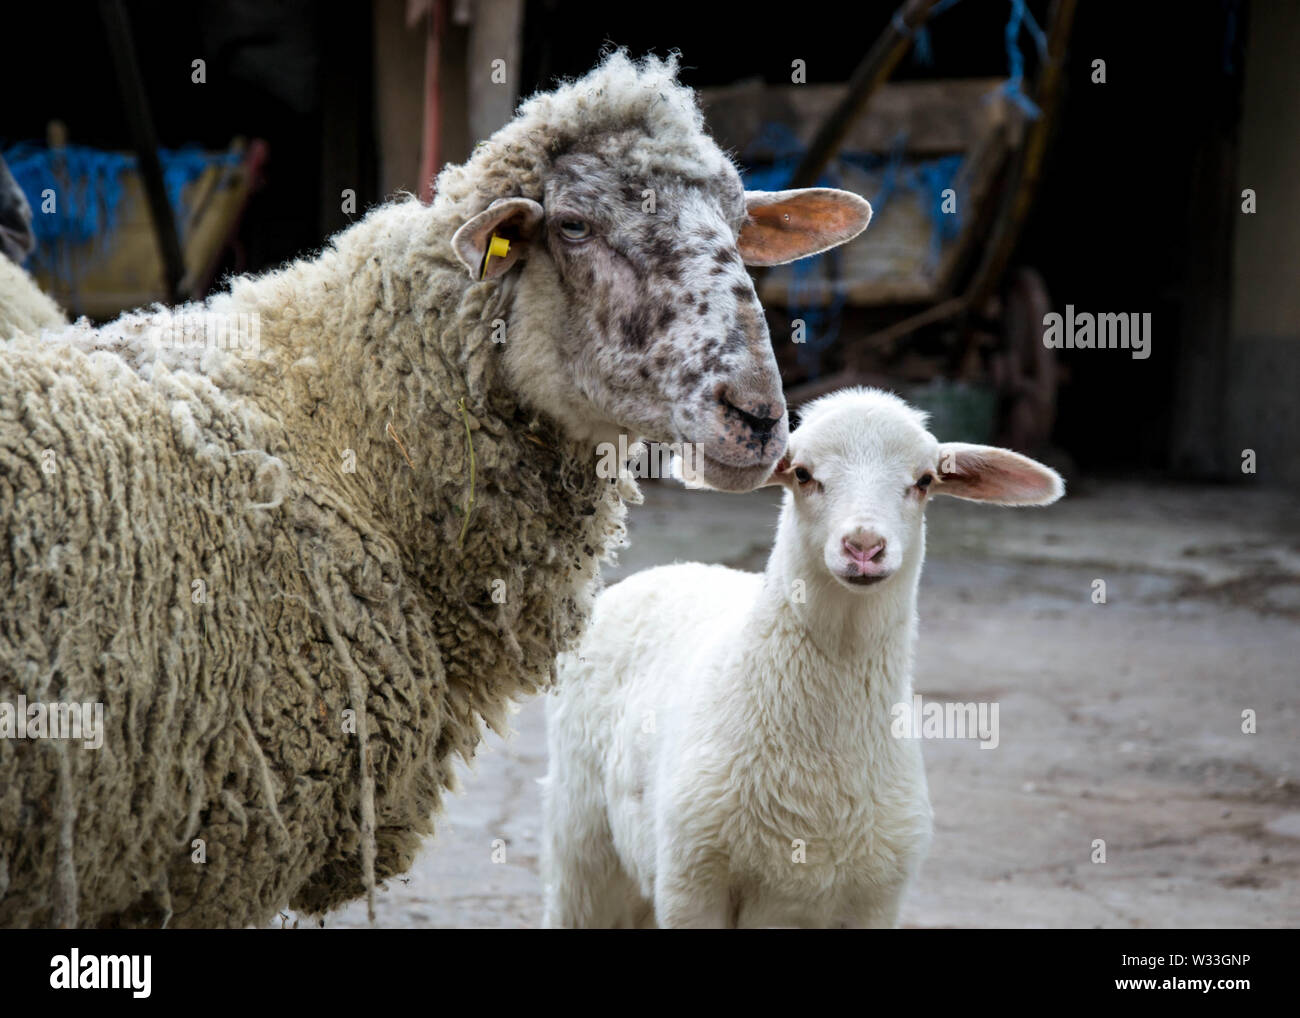 Baby lamb and mother sheep in the farm, looking at the camera. Close up of livestock family - Stock Image